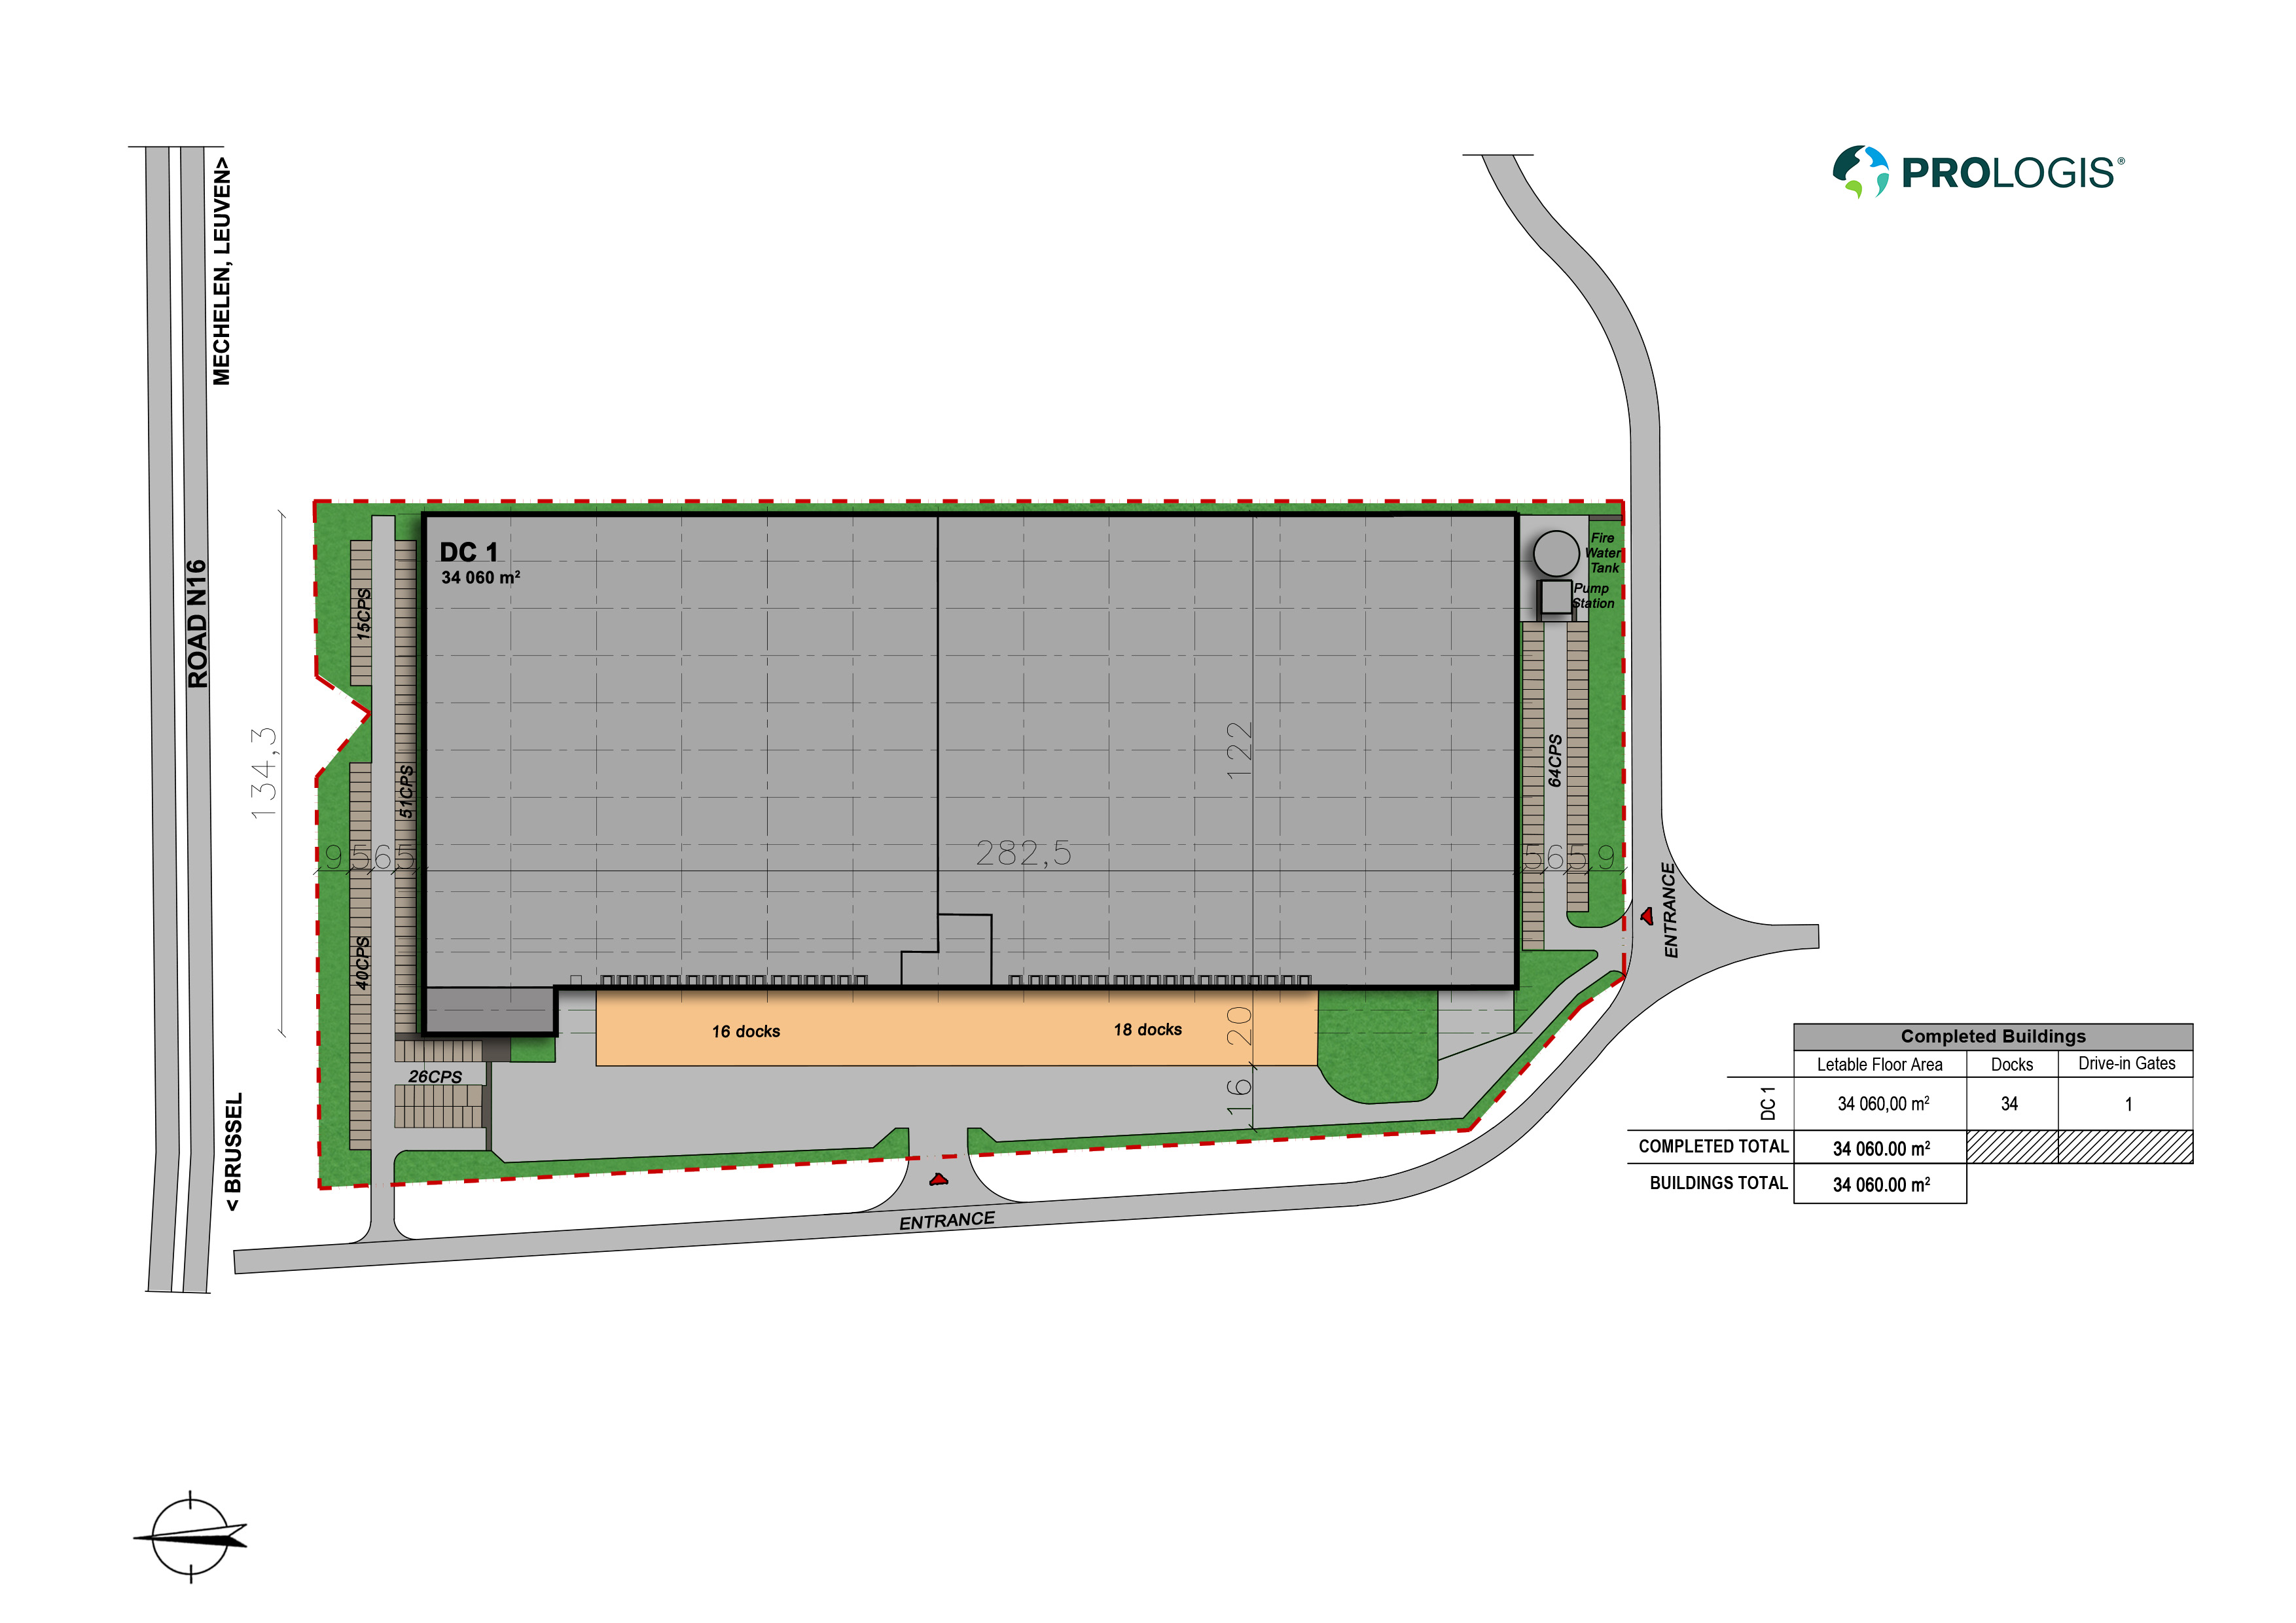 Hall Plan Prologis Park Willebroek